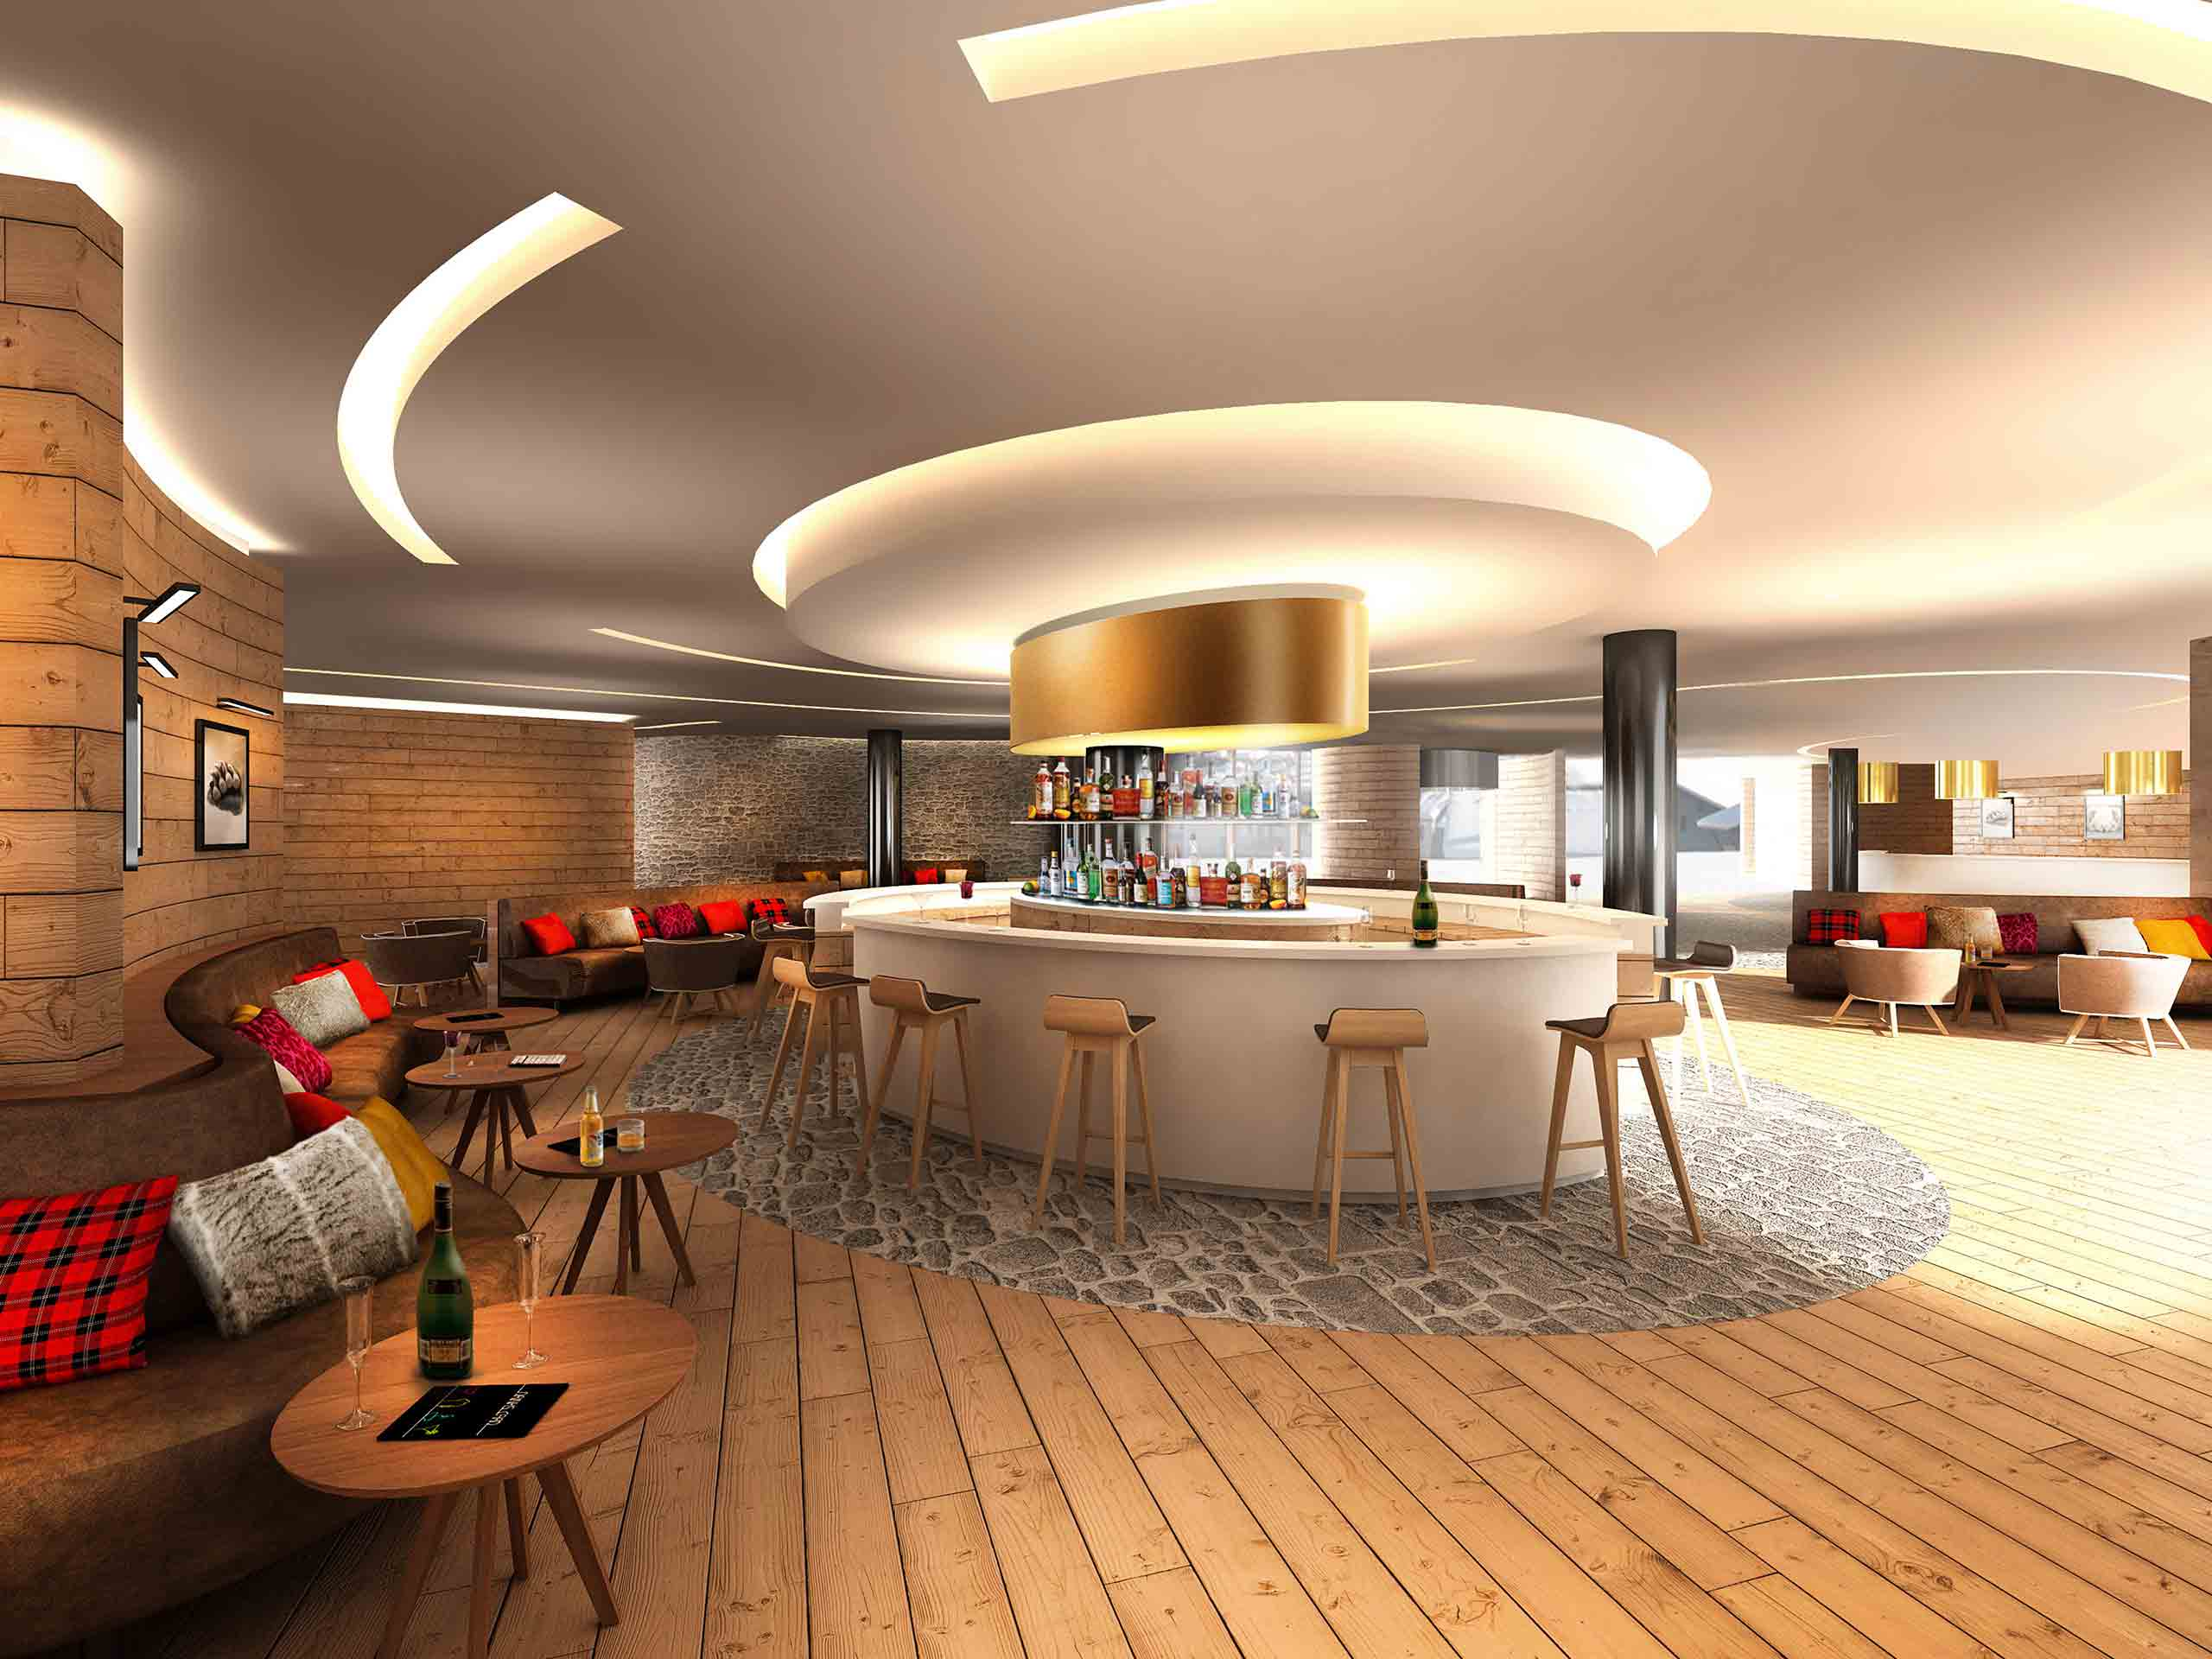 Hotels_Rendering_GRA_Hotel_Bar_ASA